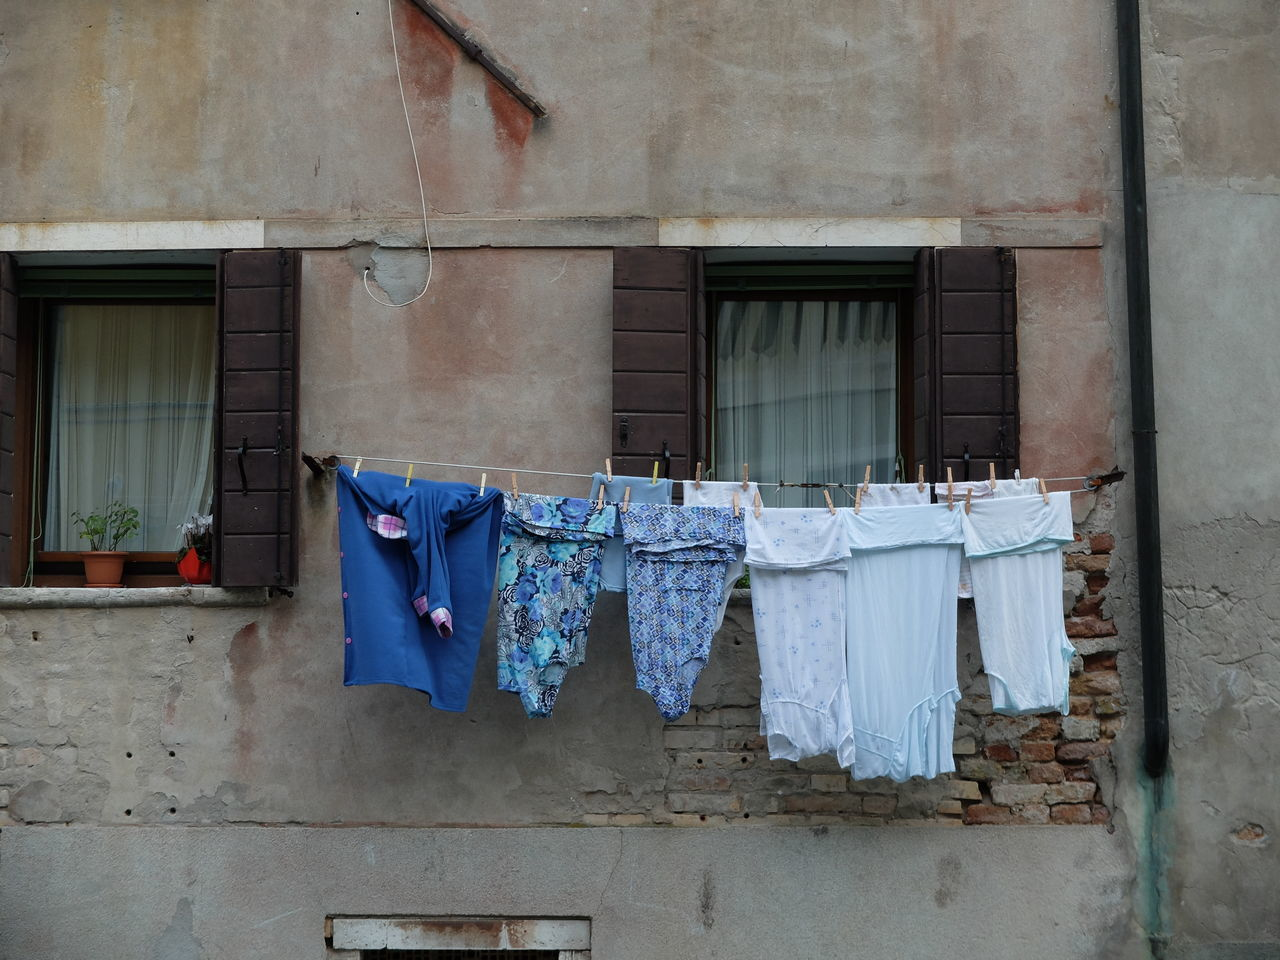 architecture, clothesline, built structure, building exterior, drying, laundry, building, window, house, no people, hanging, residential building, abandoned, outdoors, day, cloth